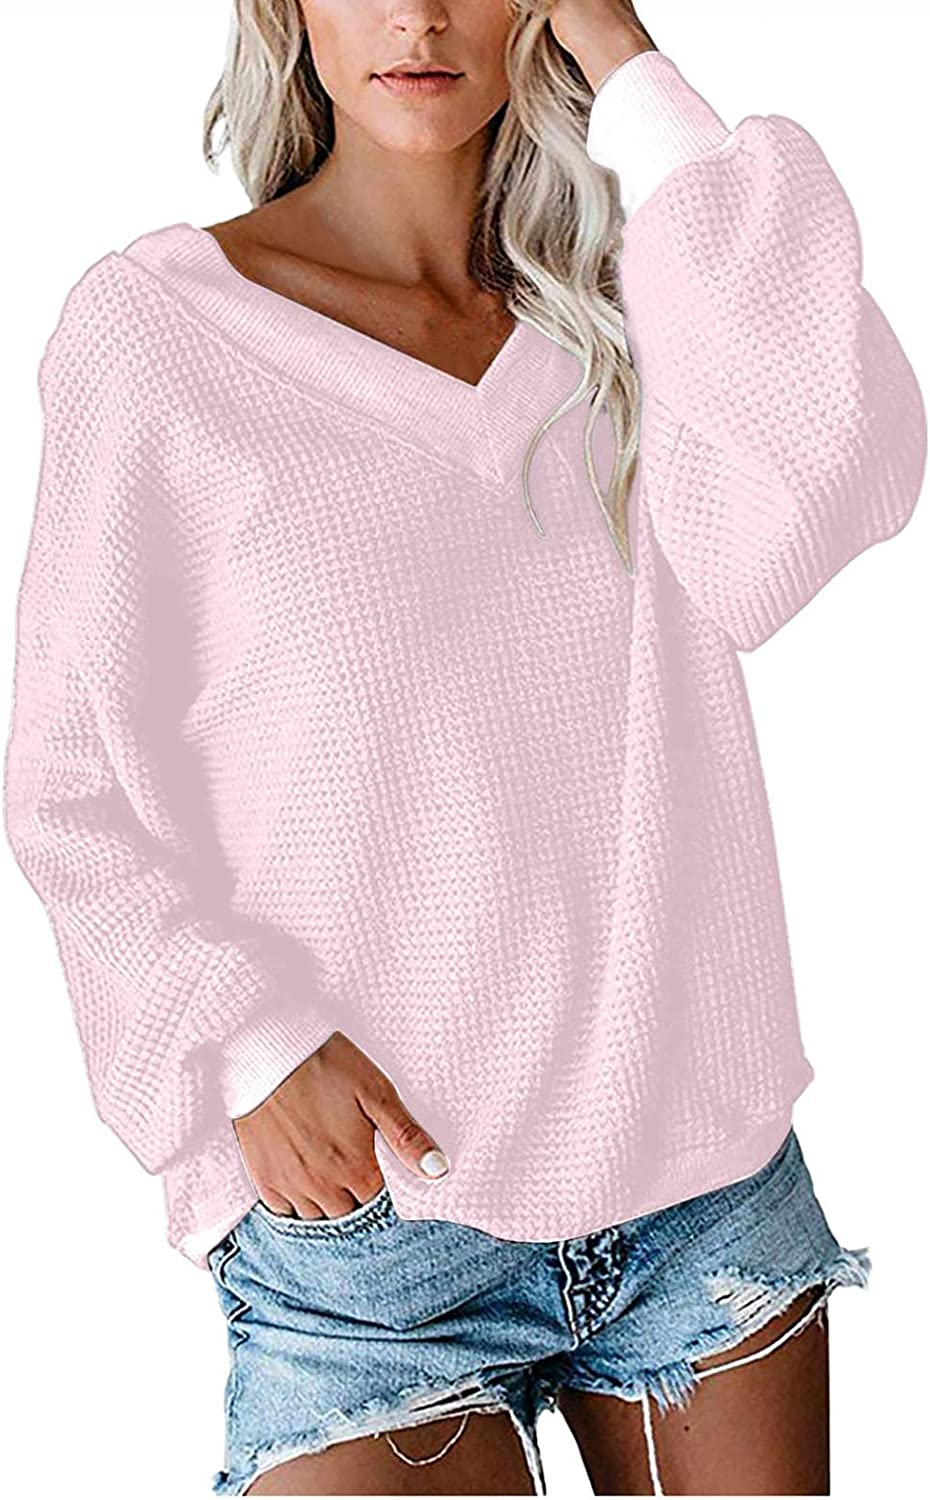 Afelkas One Shoulder Tops for Women Solid Color Slanted Shoulder Sweater Casual Long-Sleeve Blouse Knitted Bottoming Tee